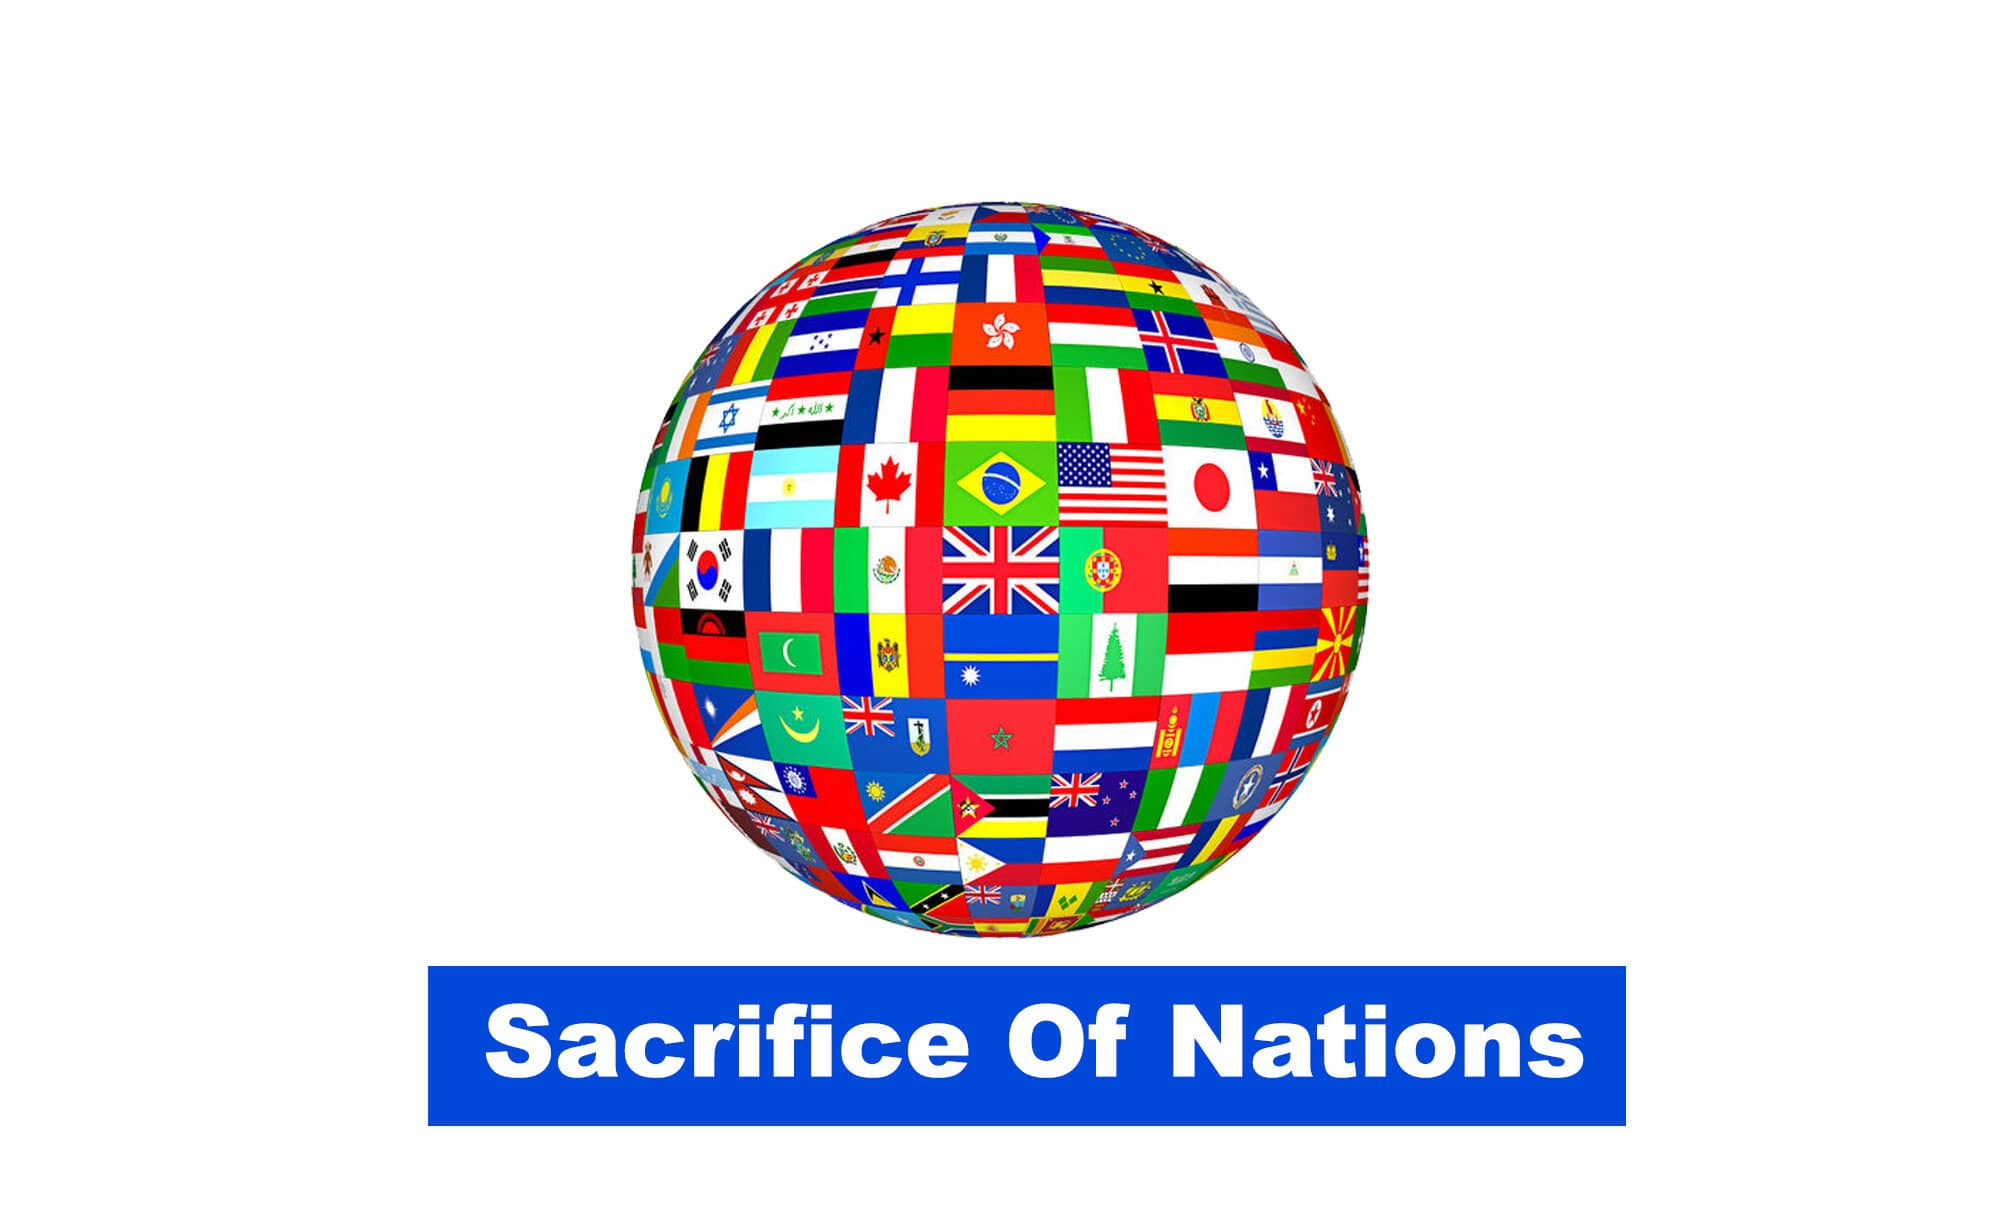 Sacrifice Of Nations